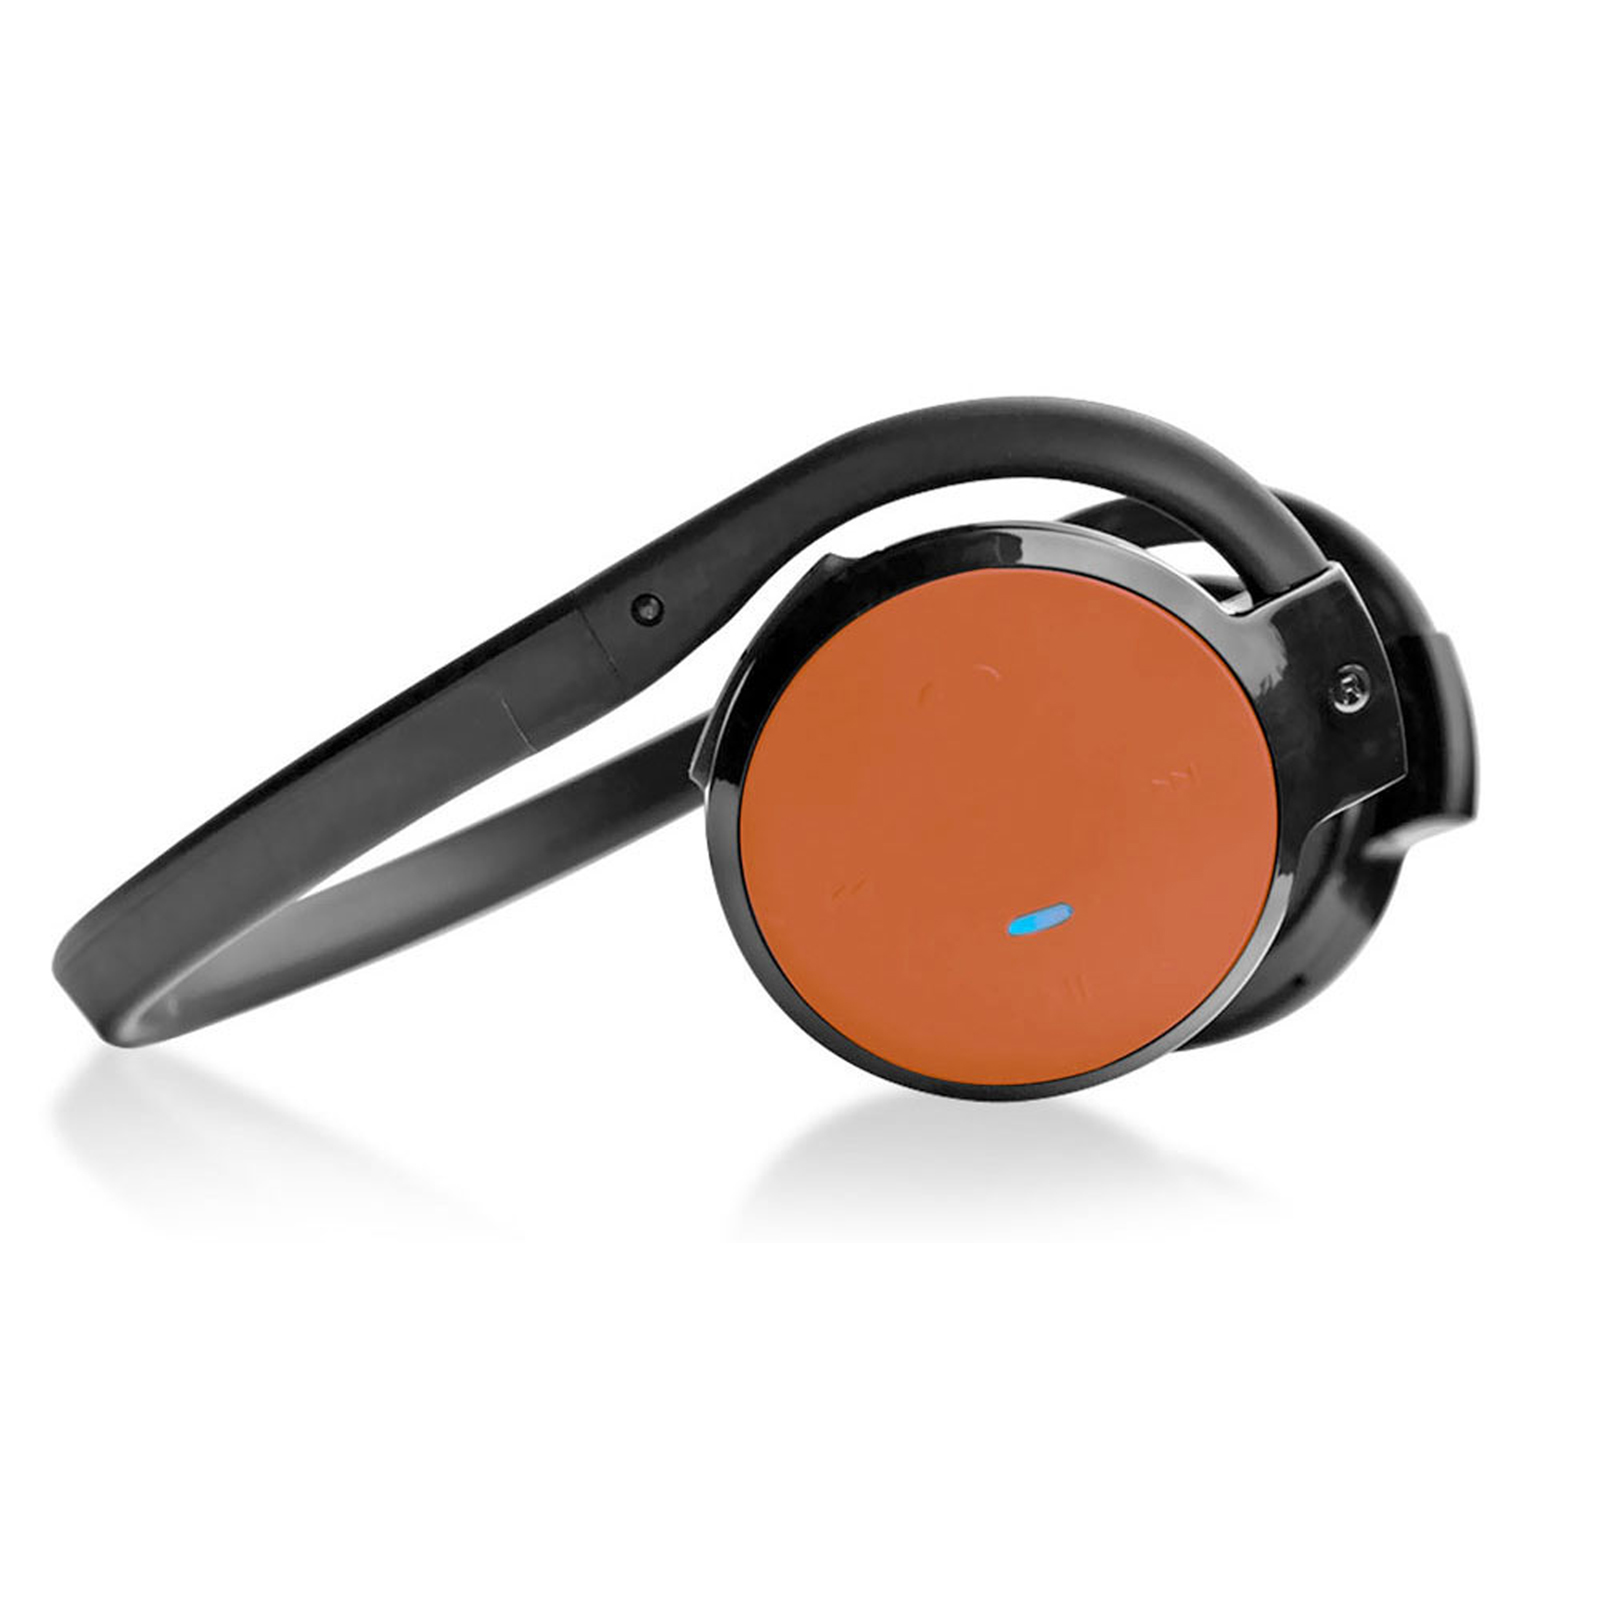 Pyle Stereo BT Streaming cord-free Headphones with Built-in Microphone - Works with All BT-Enabled Phones & Devices (Orange)